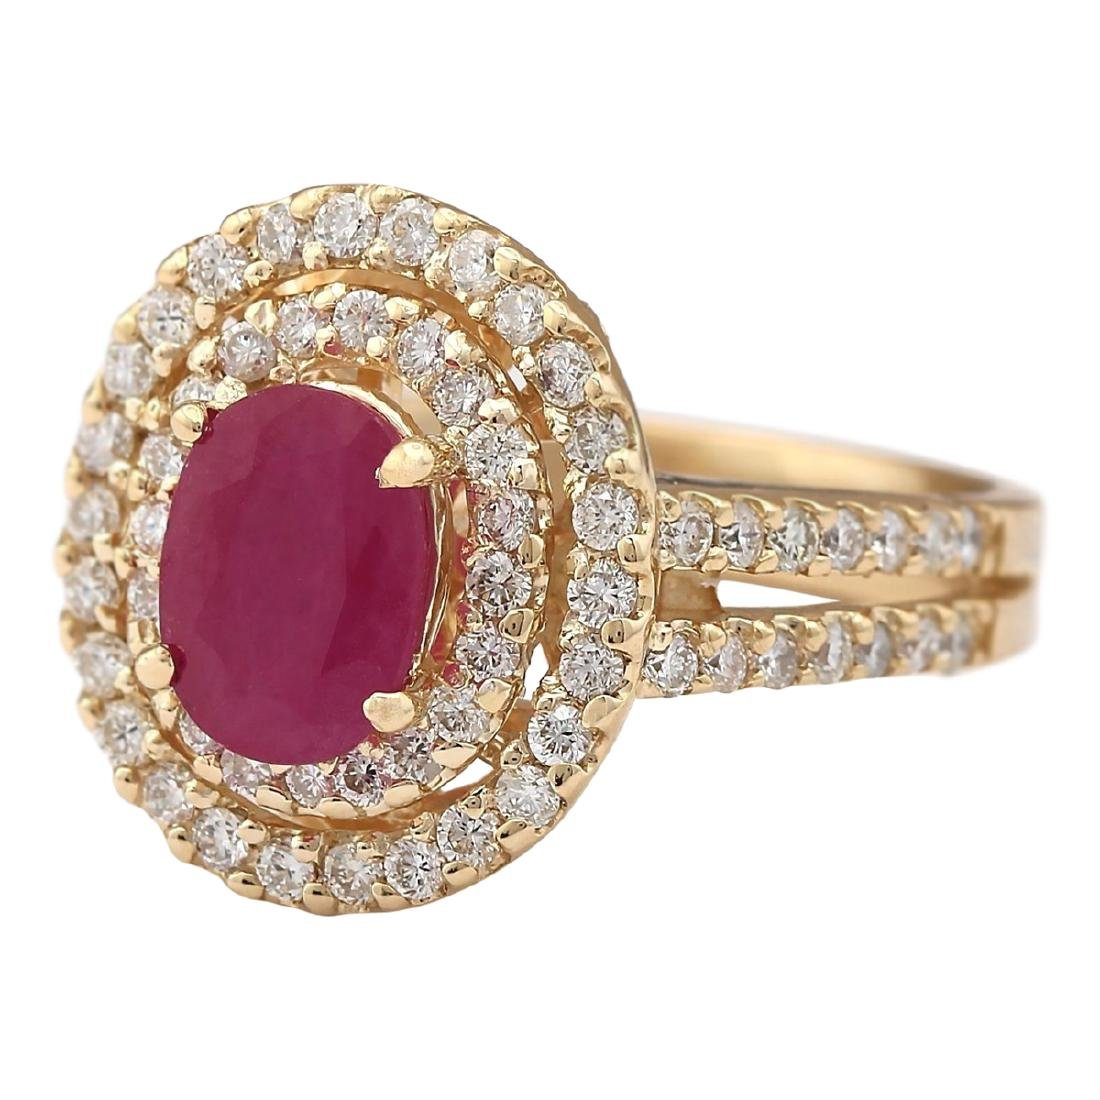 3.08 CTW Natural Ruby Ring In 18K Yellow Gold - 2